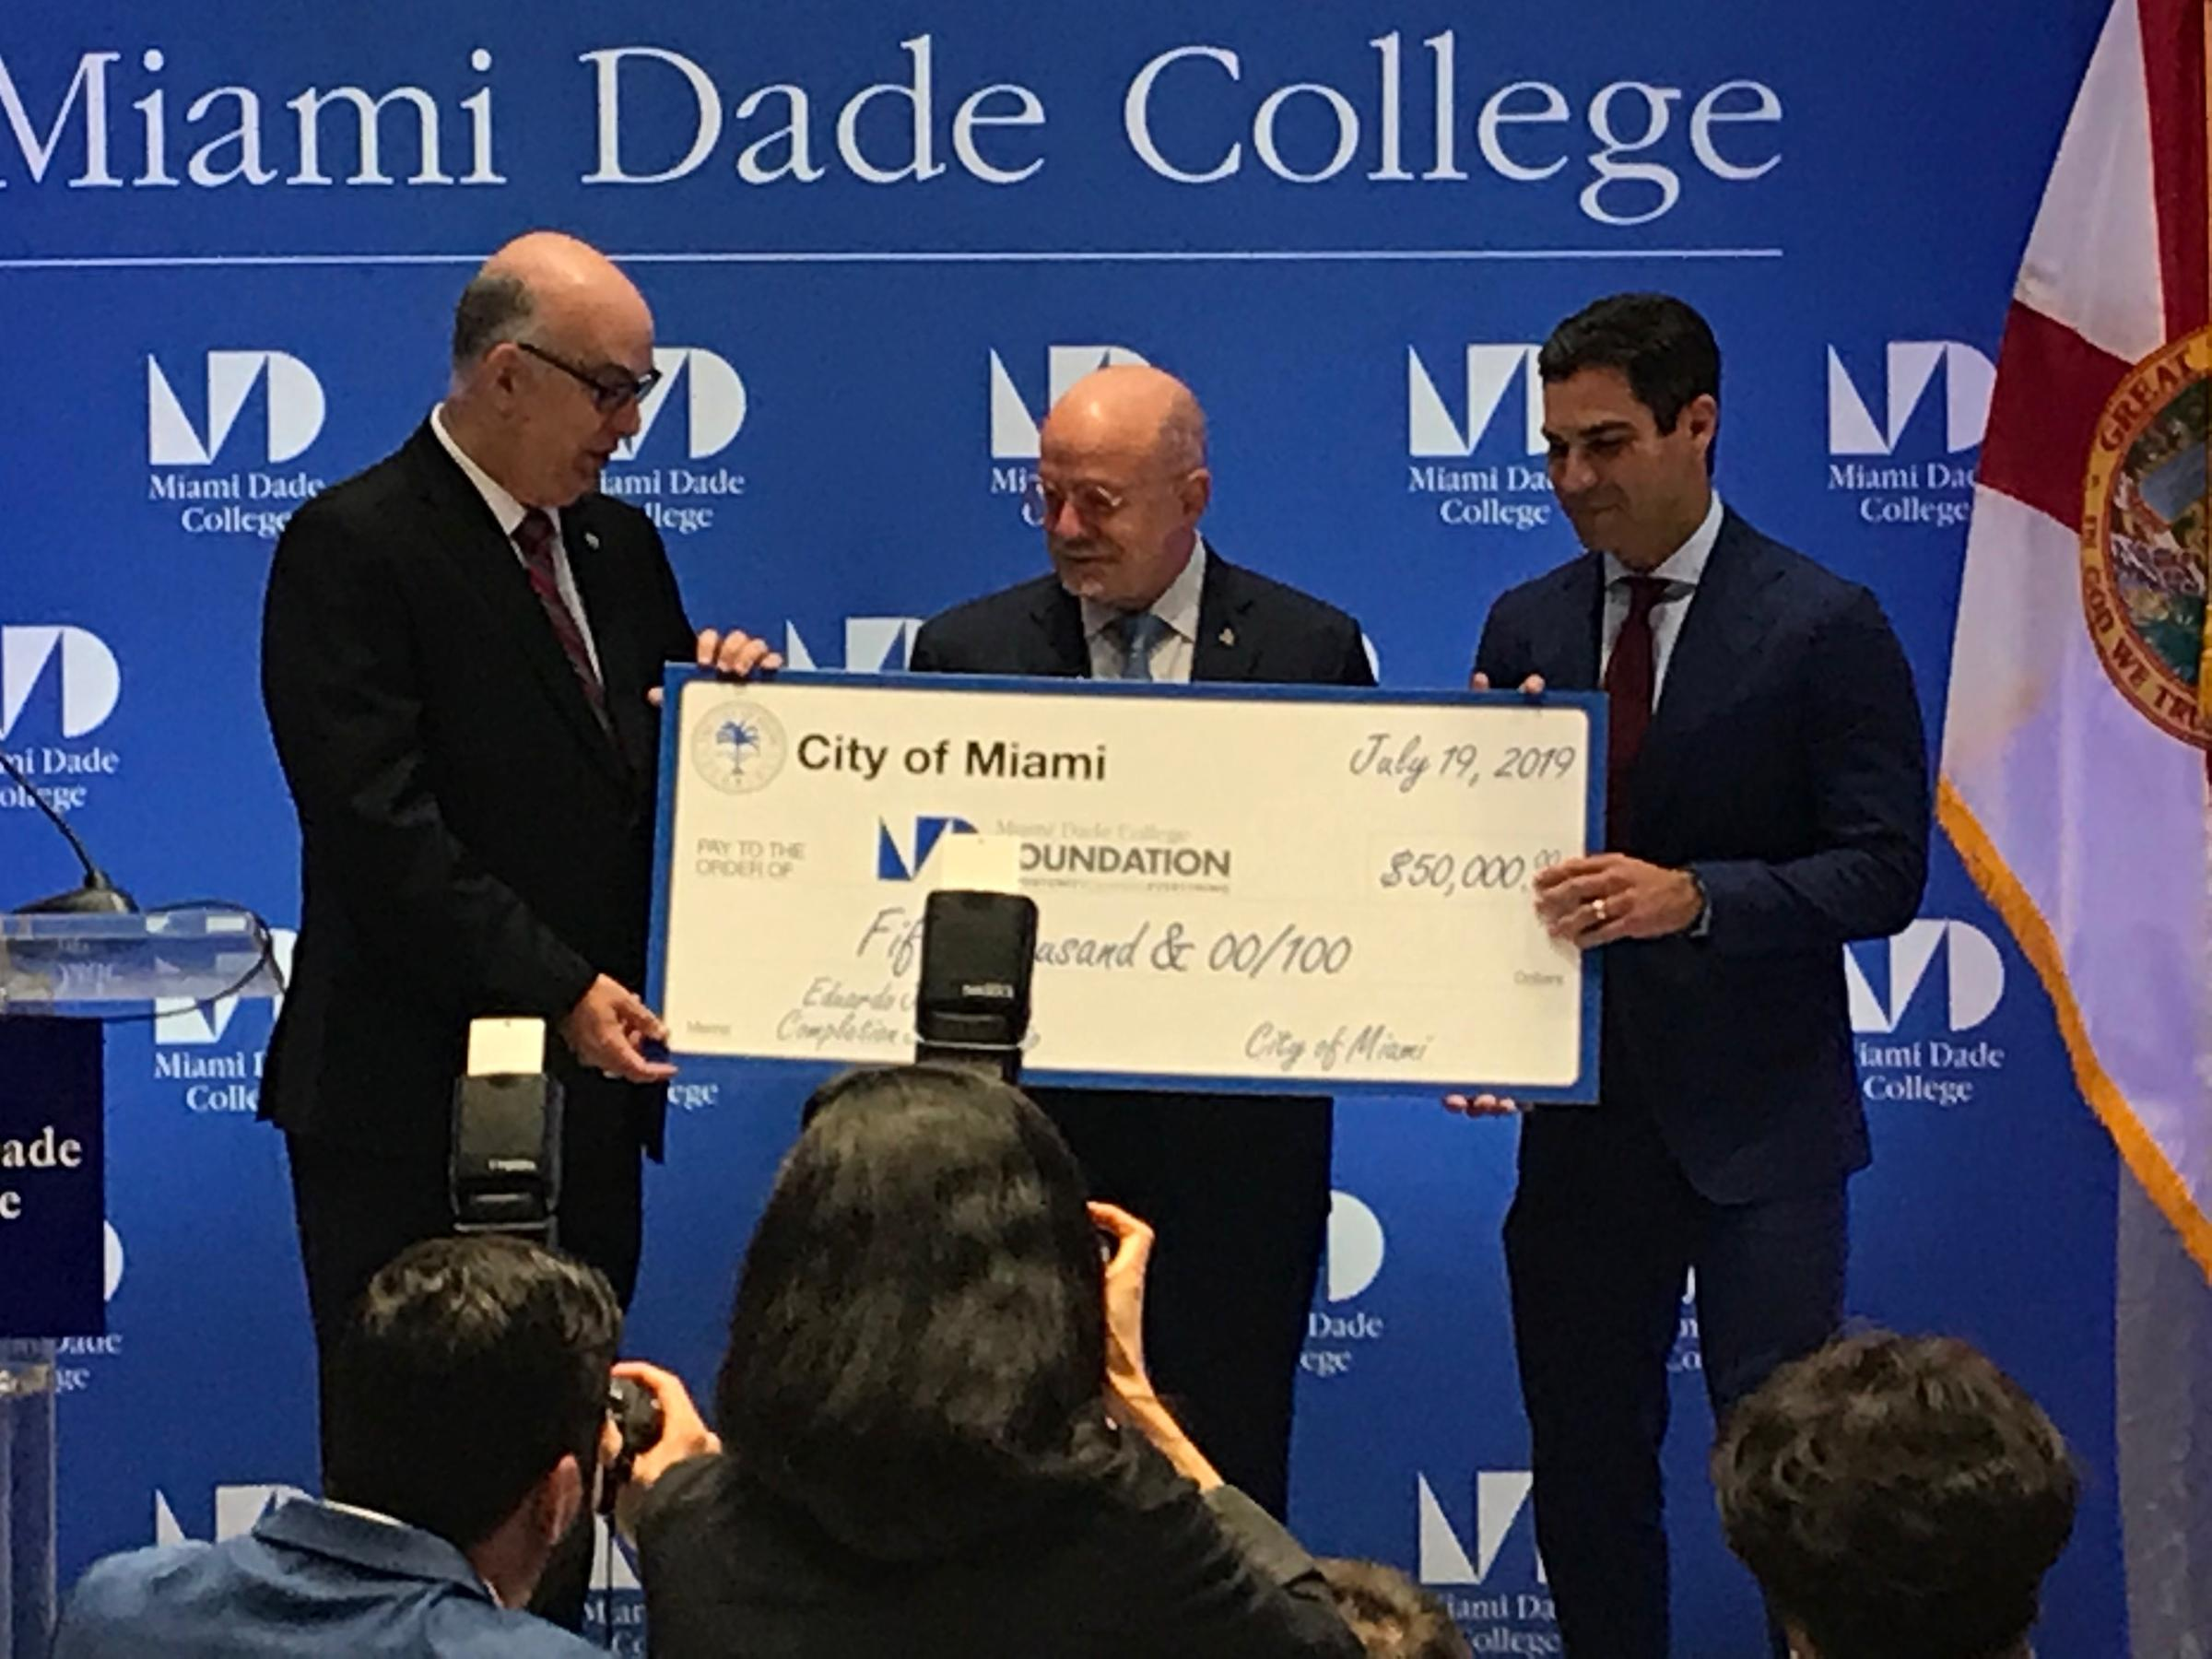 City Of Miami Funds New Scholarship At Miami Dade College To Honor